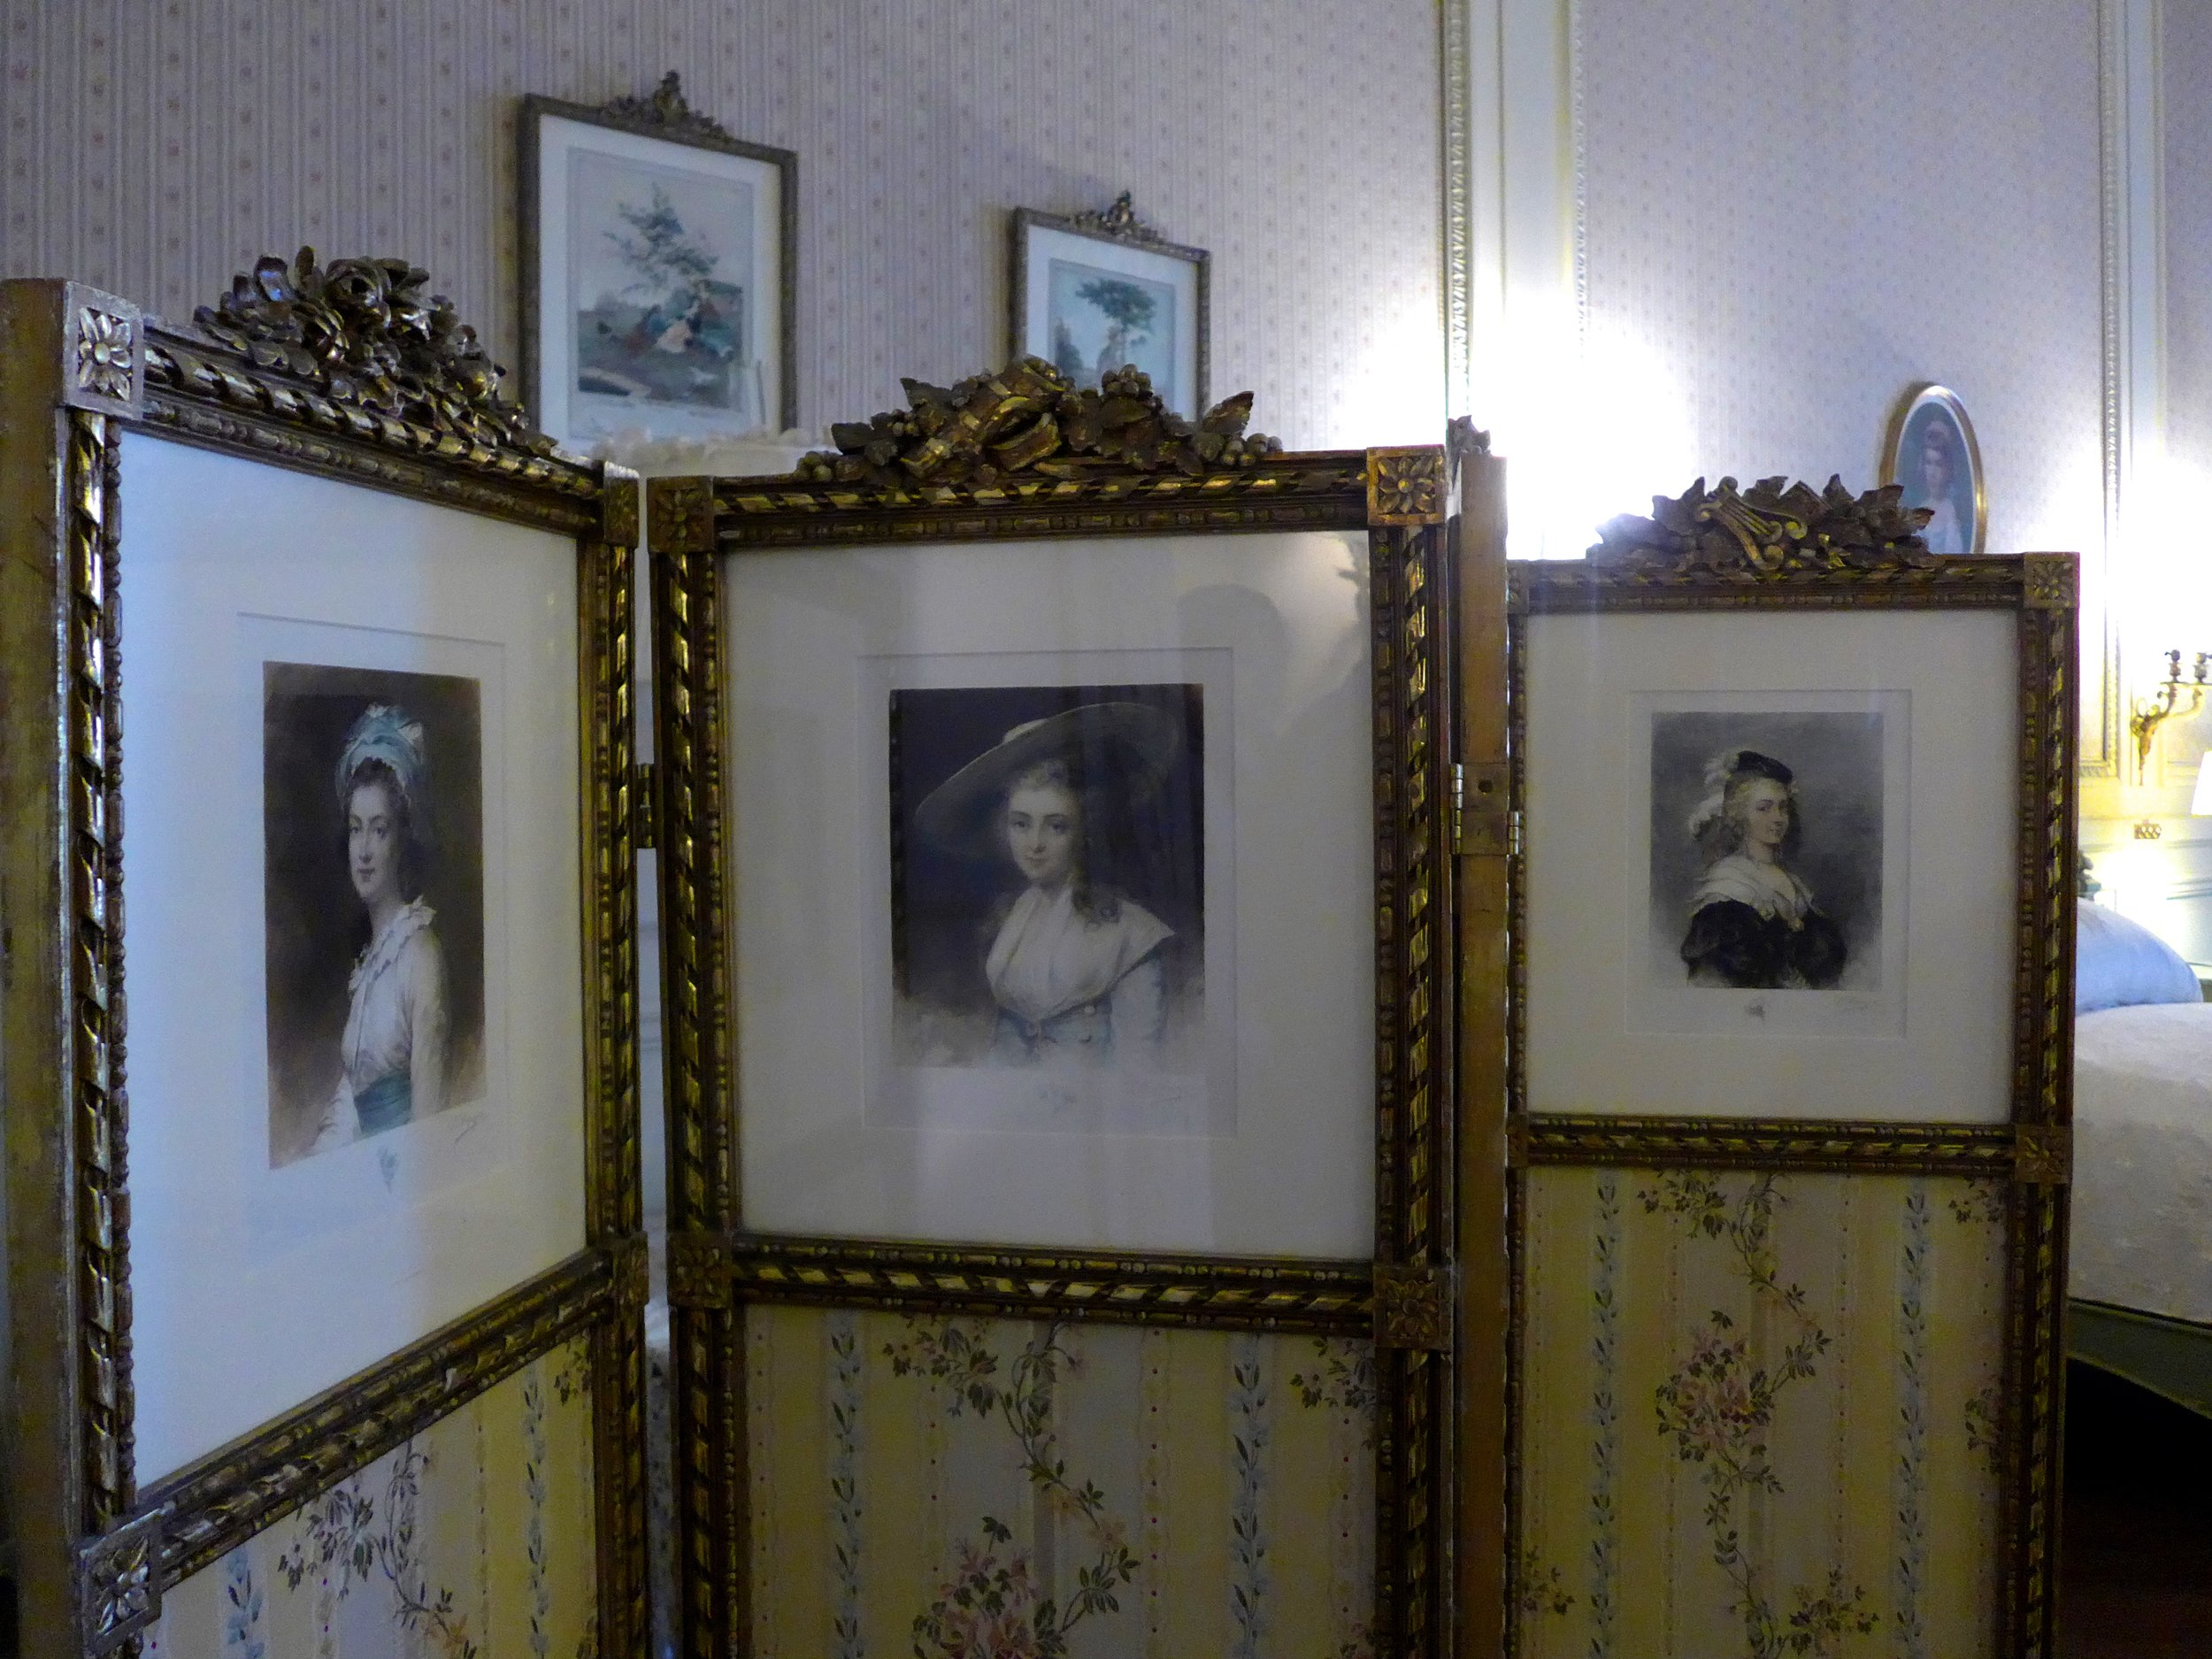 There was lots of great use of dressing screens. I love the idea of using them to display photos.